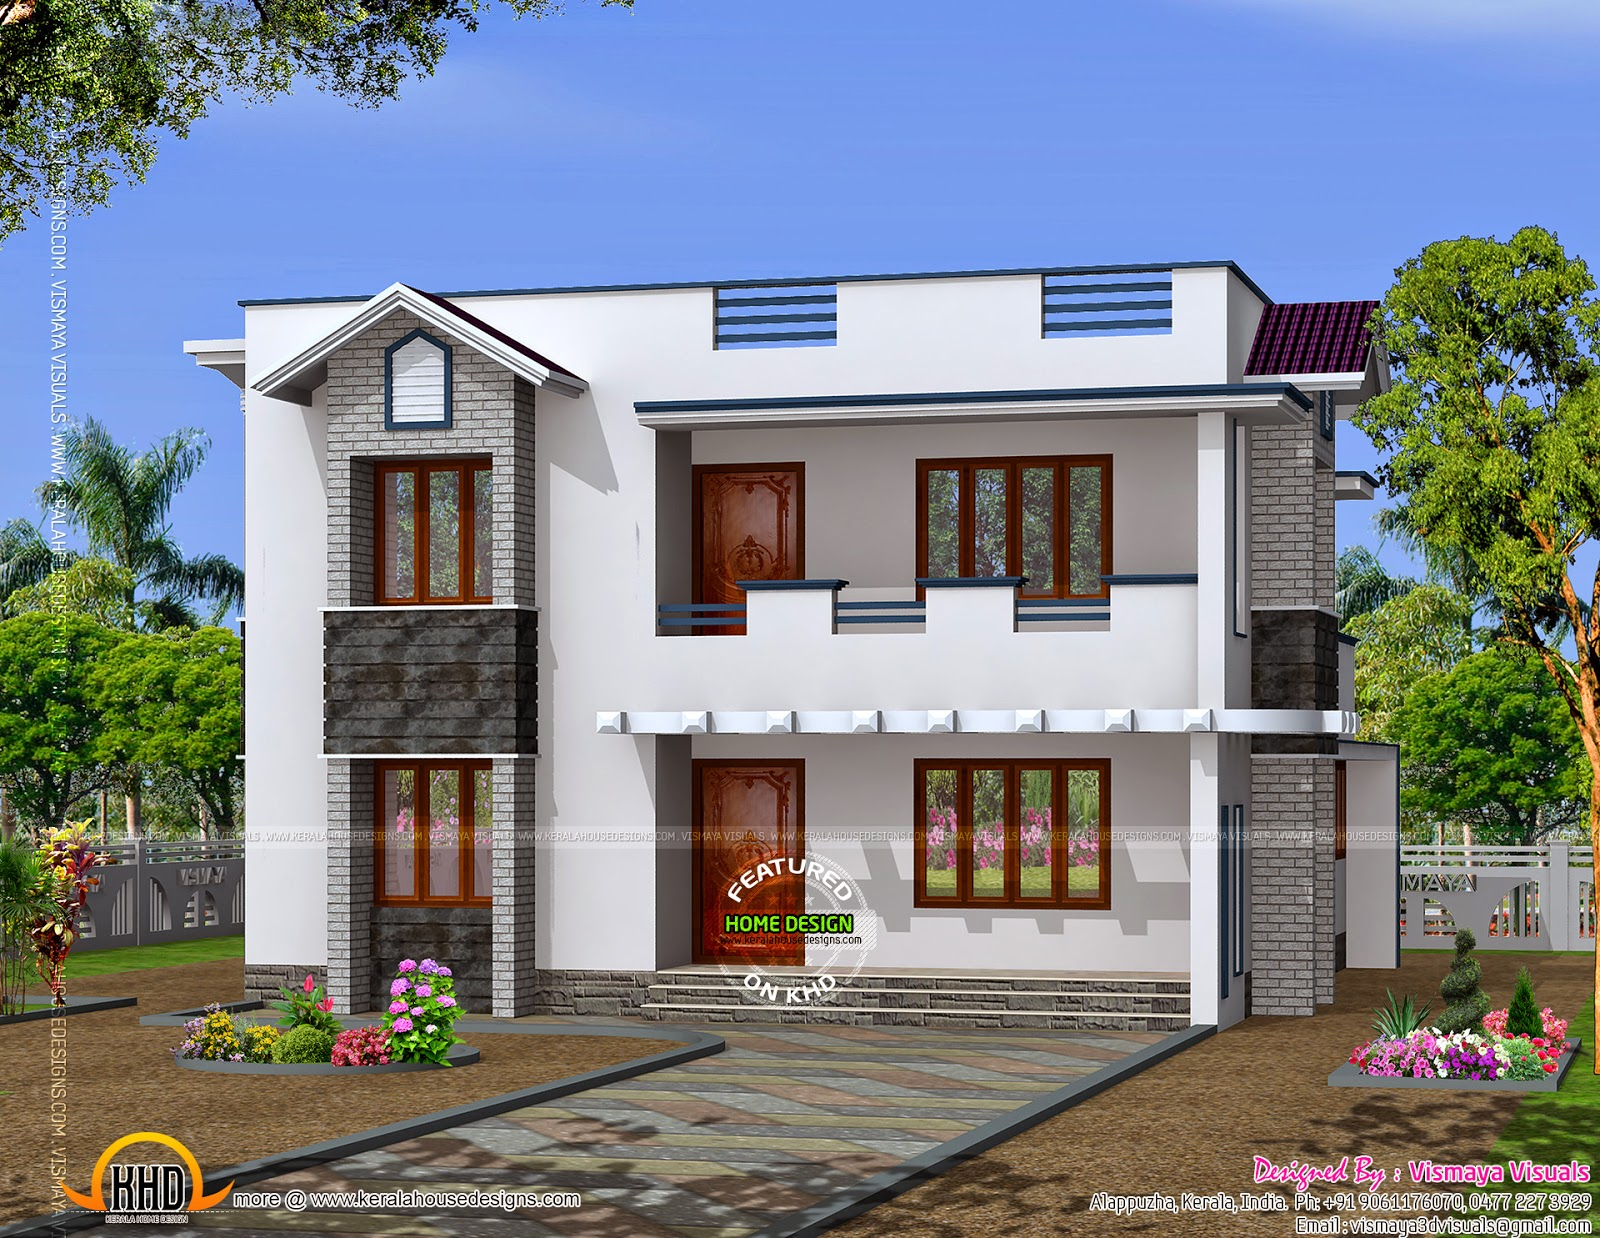 Simple design home kerala home design and floor plans for Simple kerala home designs